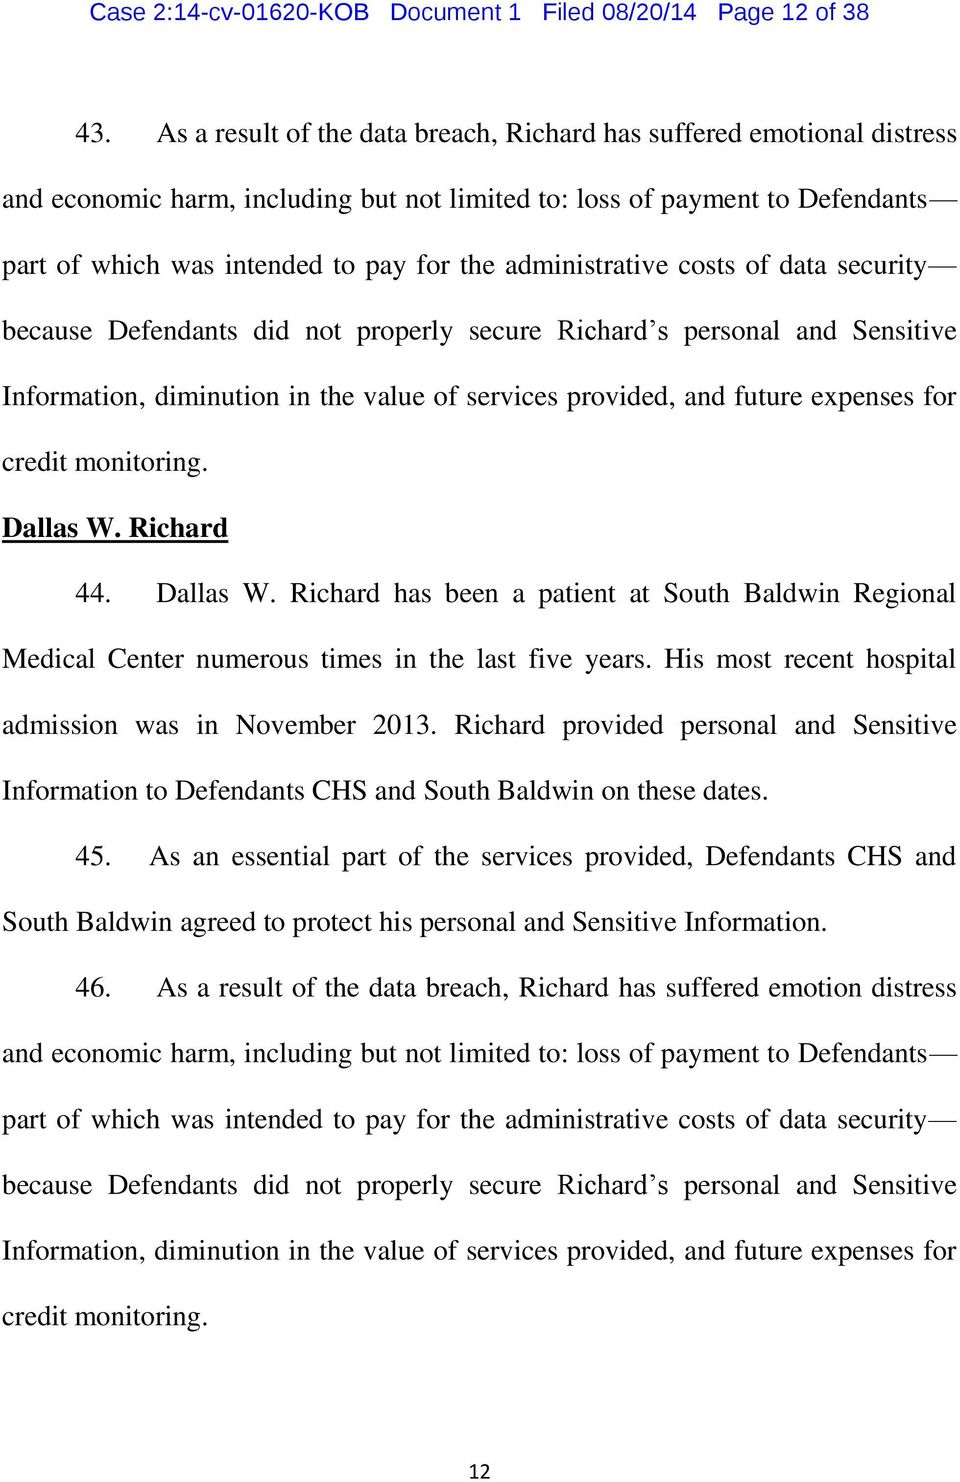 administrative costs of data security because Defendants did not properly secure Richard s personal and Sensitive Information, diminution in the value of services provided, and future expenses for